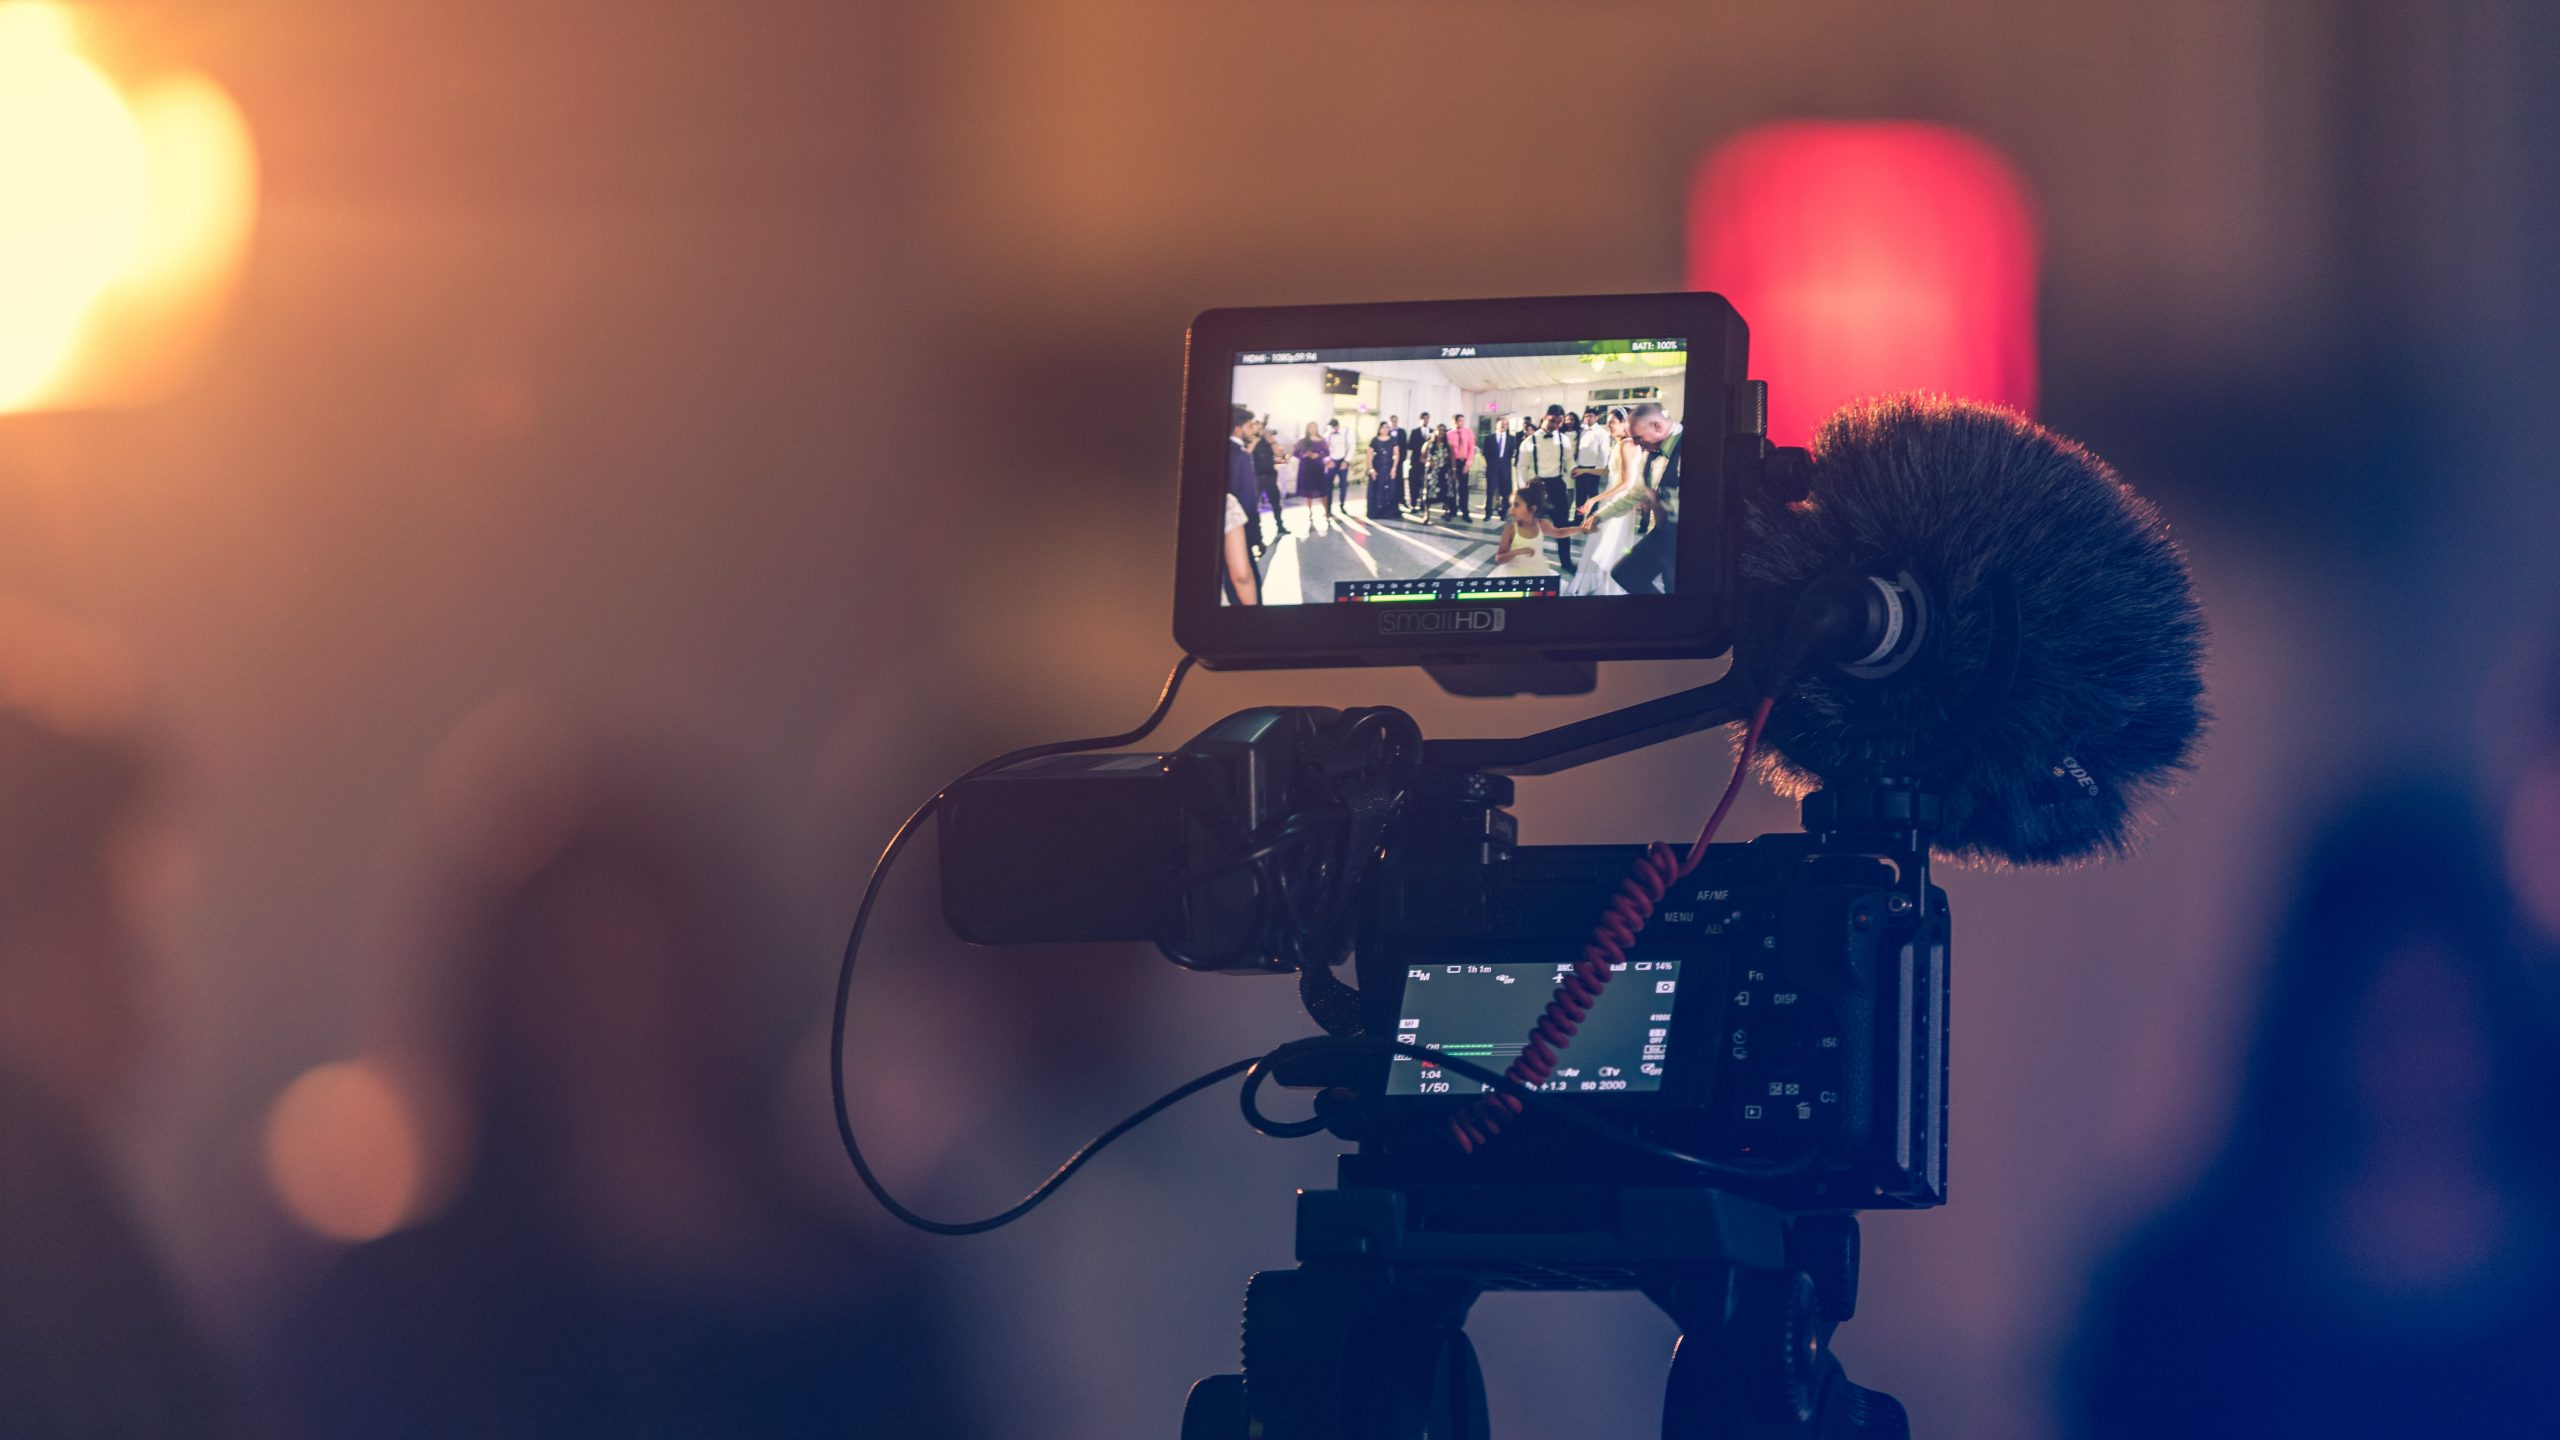 filming with a video camera